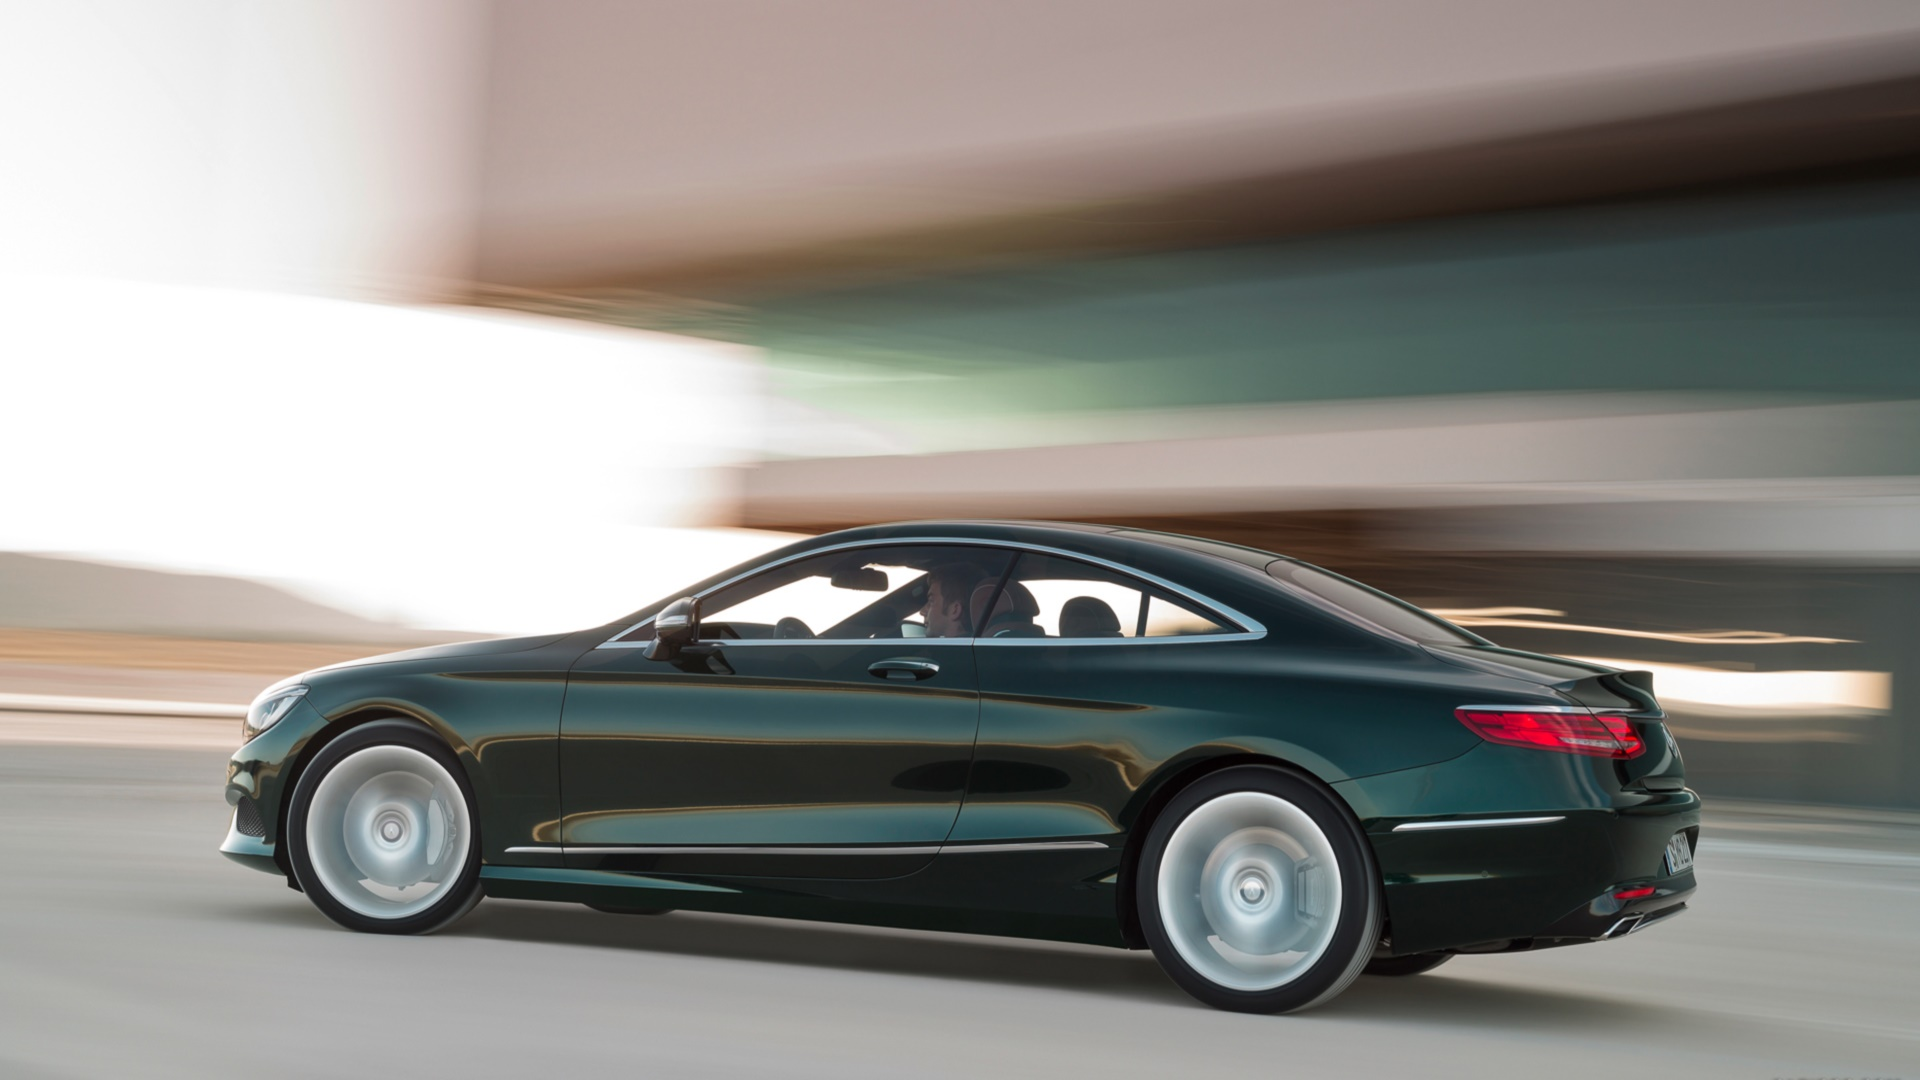 Mercedes benz s class coupe wallpapers pictures images for S class coupe mercedes benz